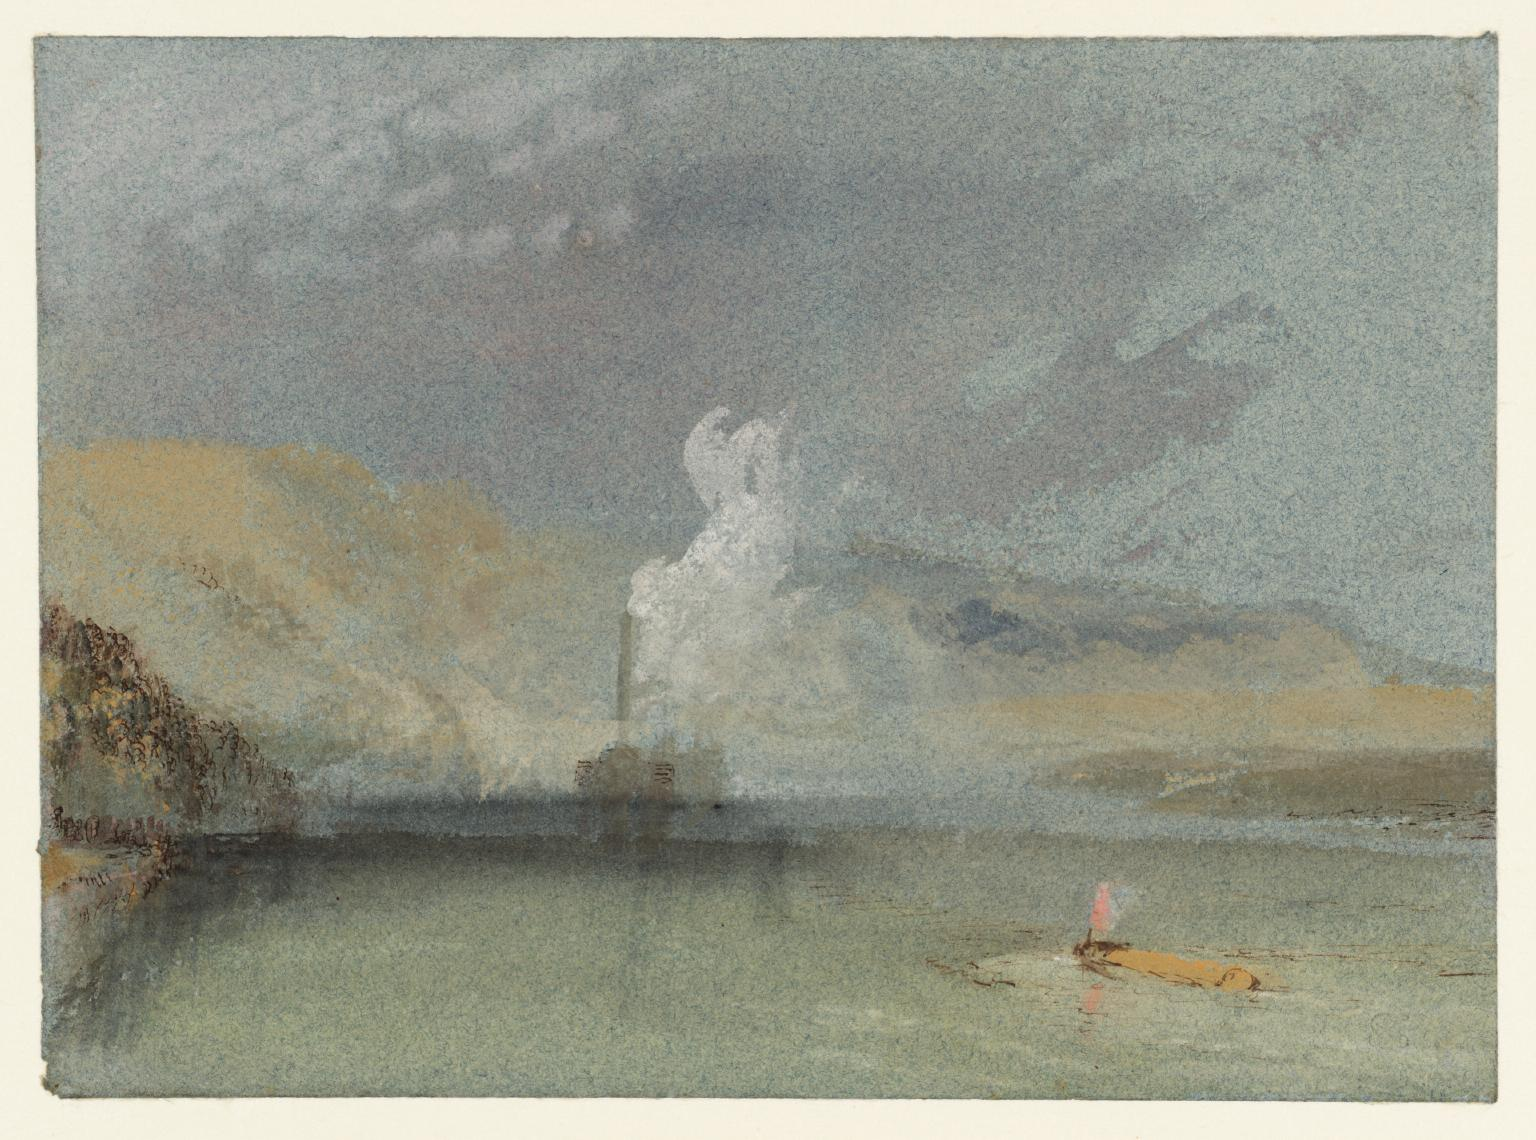 A Steamer and Shallow Waters in the Seine, Normandy c.1832 by Joseph Mallord William Turner 1775-1851